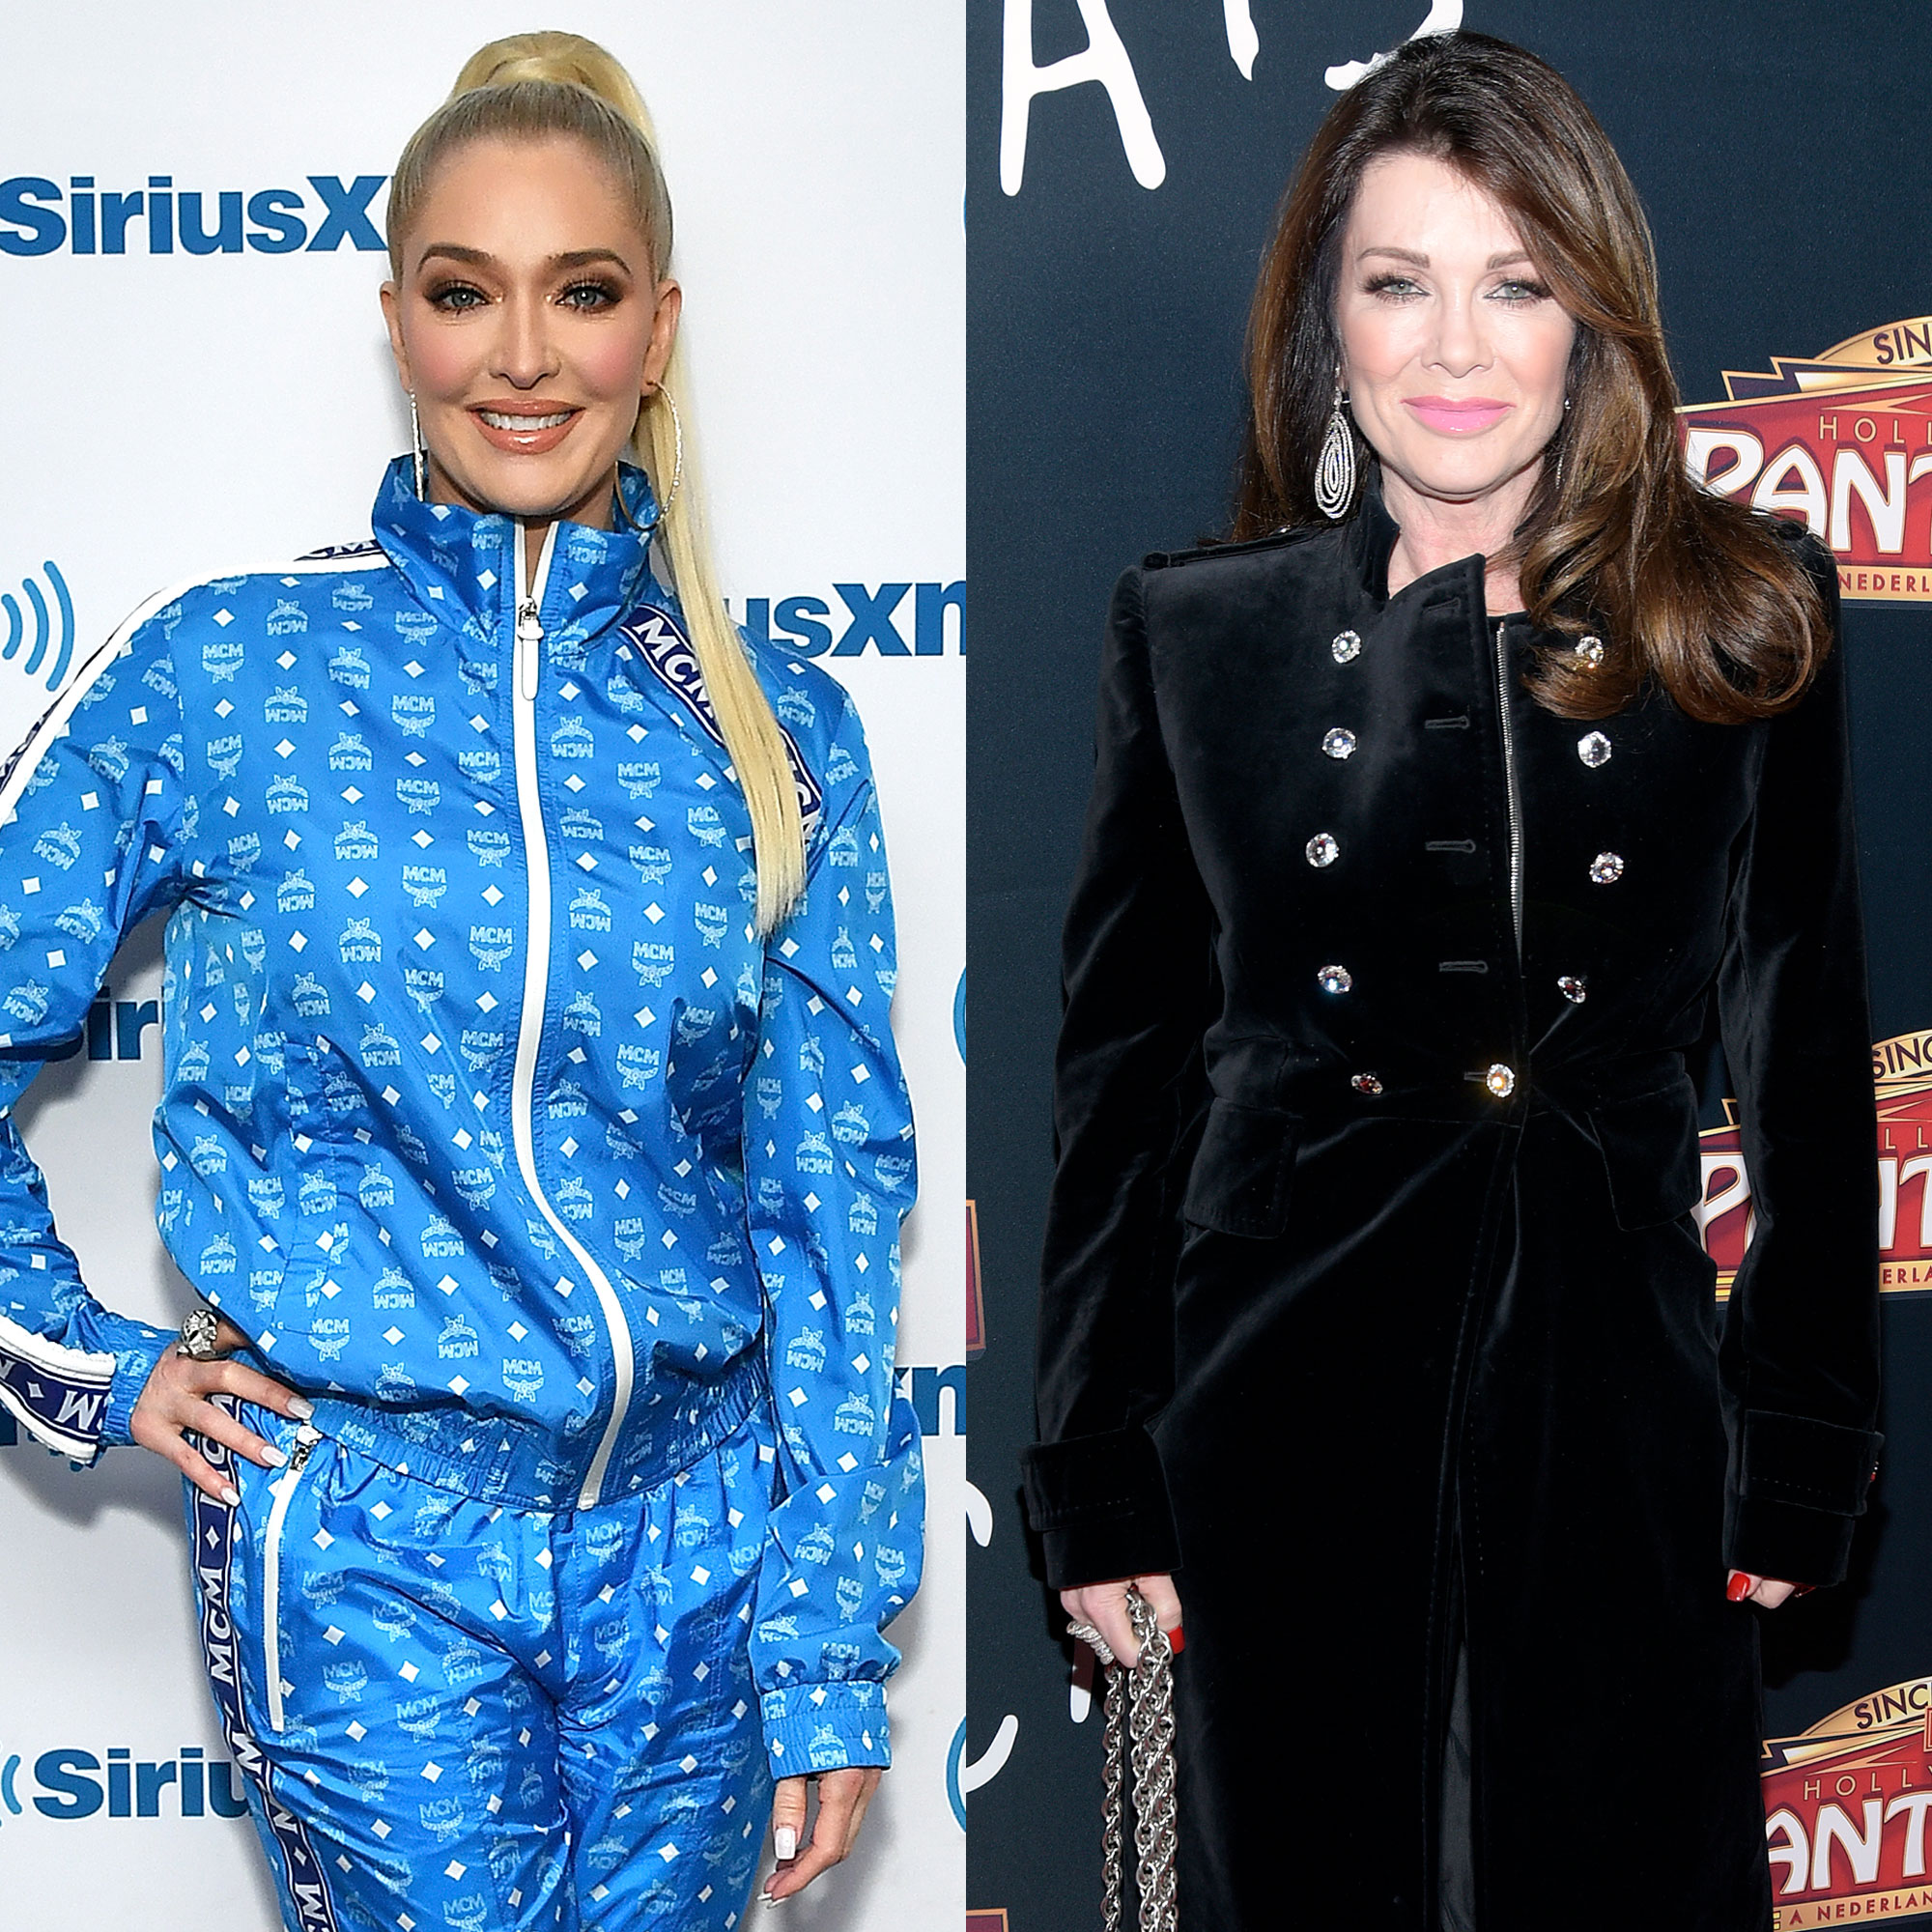 Erika Jayne: 'The Tone Changes' When Lisa Vanderpump Isn't Around on 'Real Housewives of Beverly Hills'